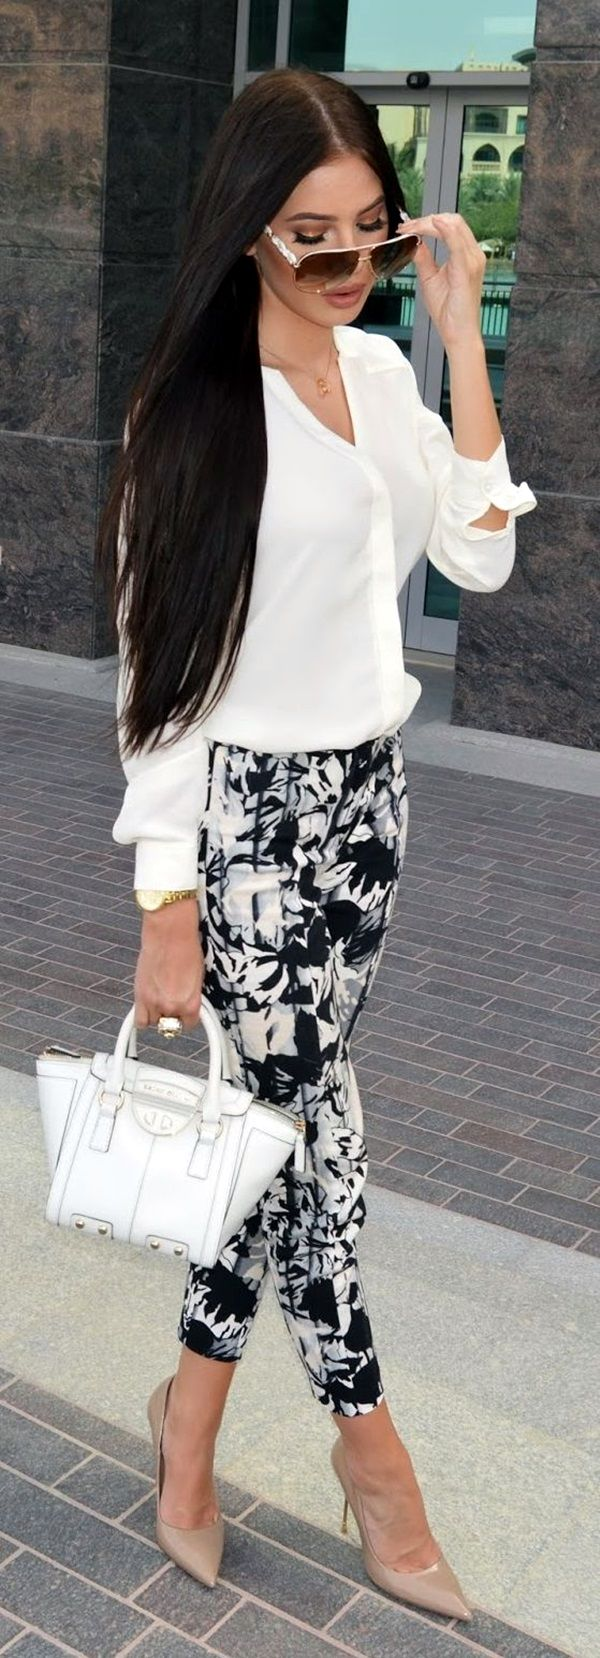 45 Casual Work Outfits Ideas 2016